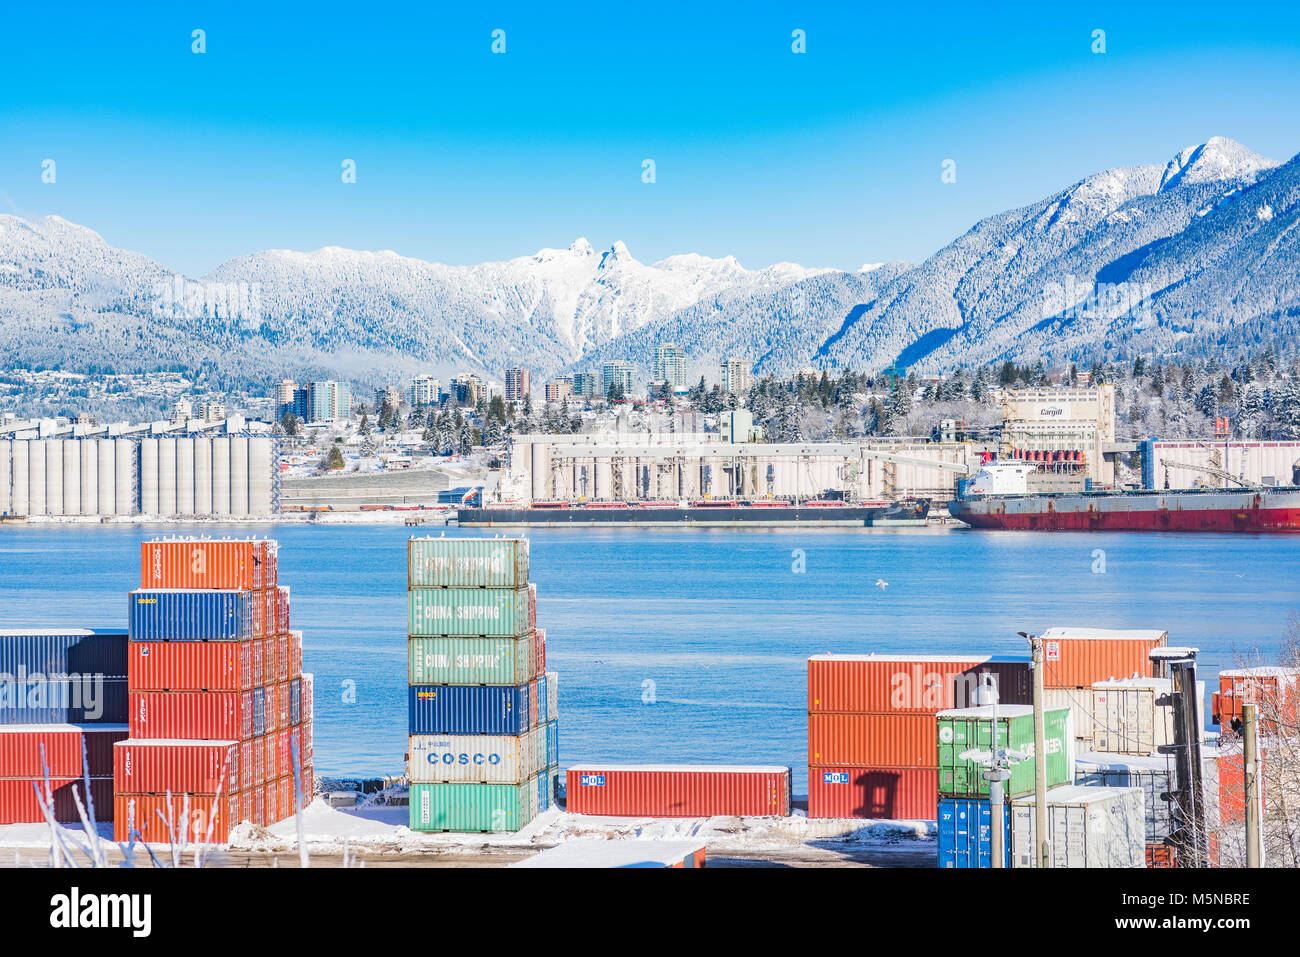 Shipping  containers at the Port of Vancouver, Burrard Inlet, Vancouver, British Columbia, Canada. Stock Photo